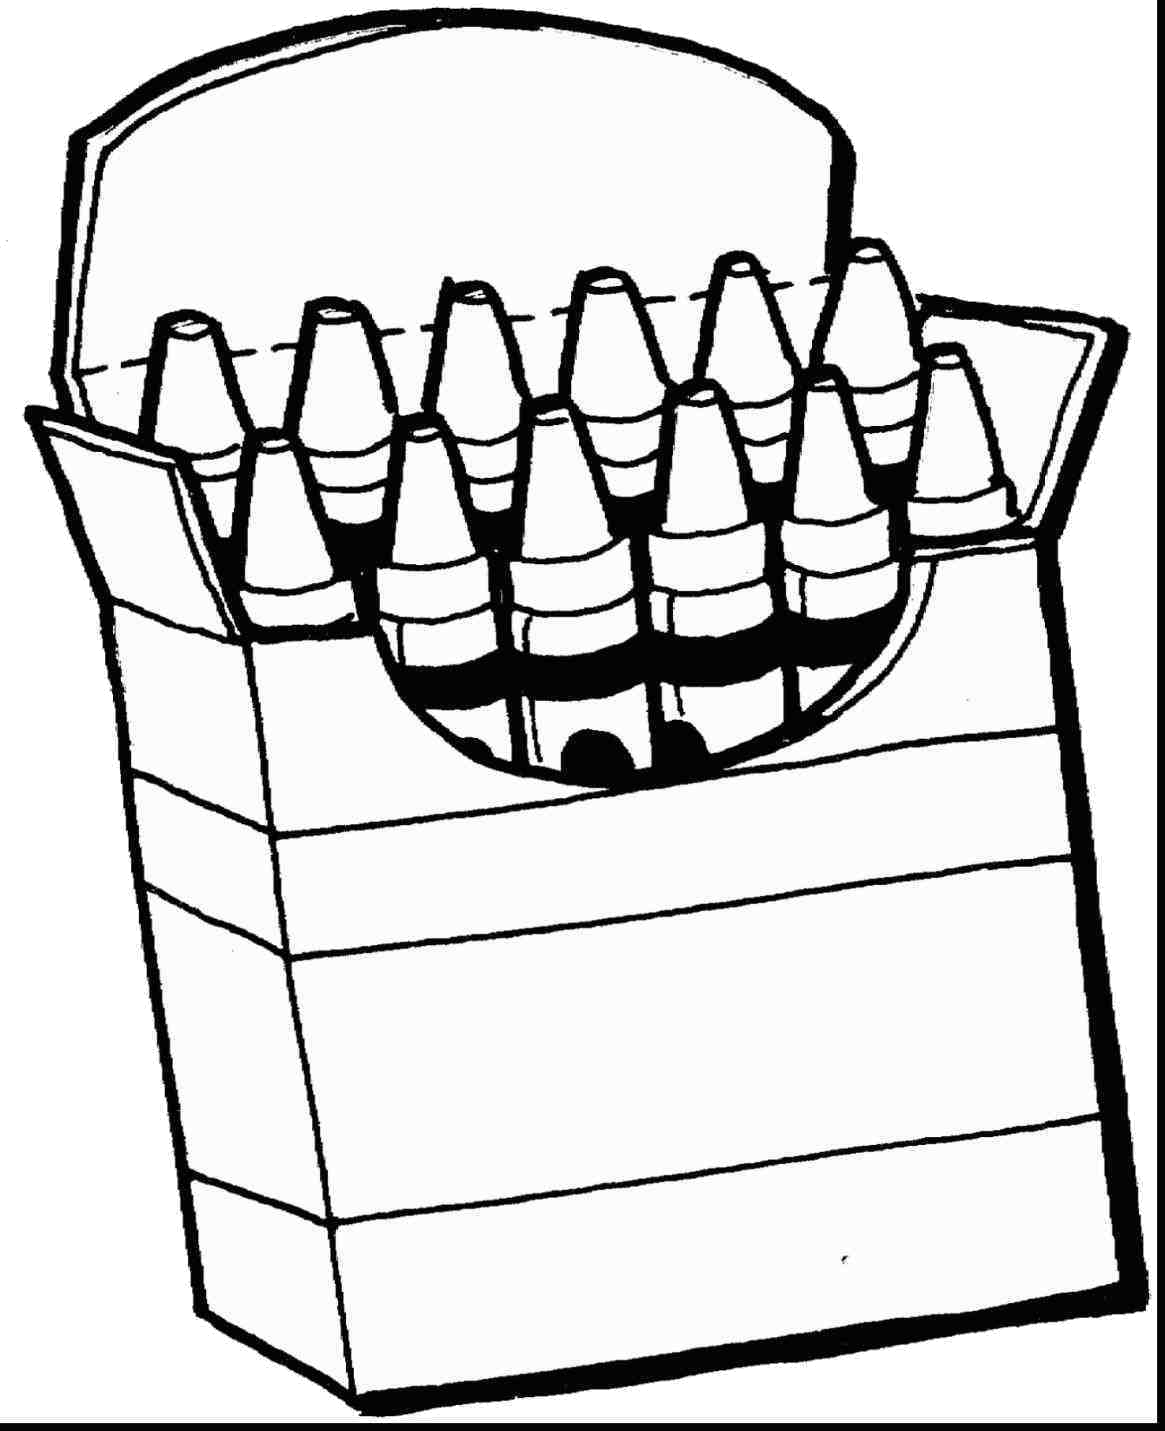 Gray Crayon Coloring Clip Art Black And White Pages Crayons Clipart.